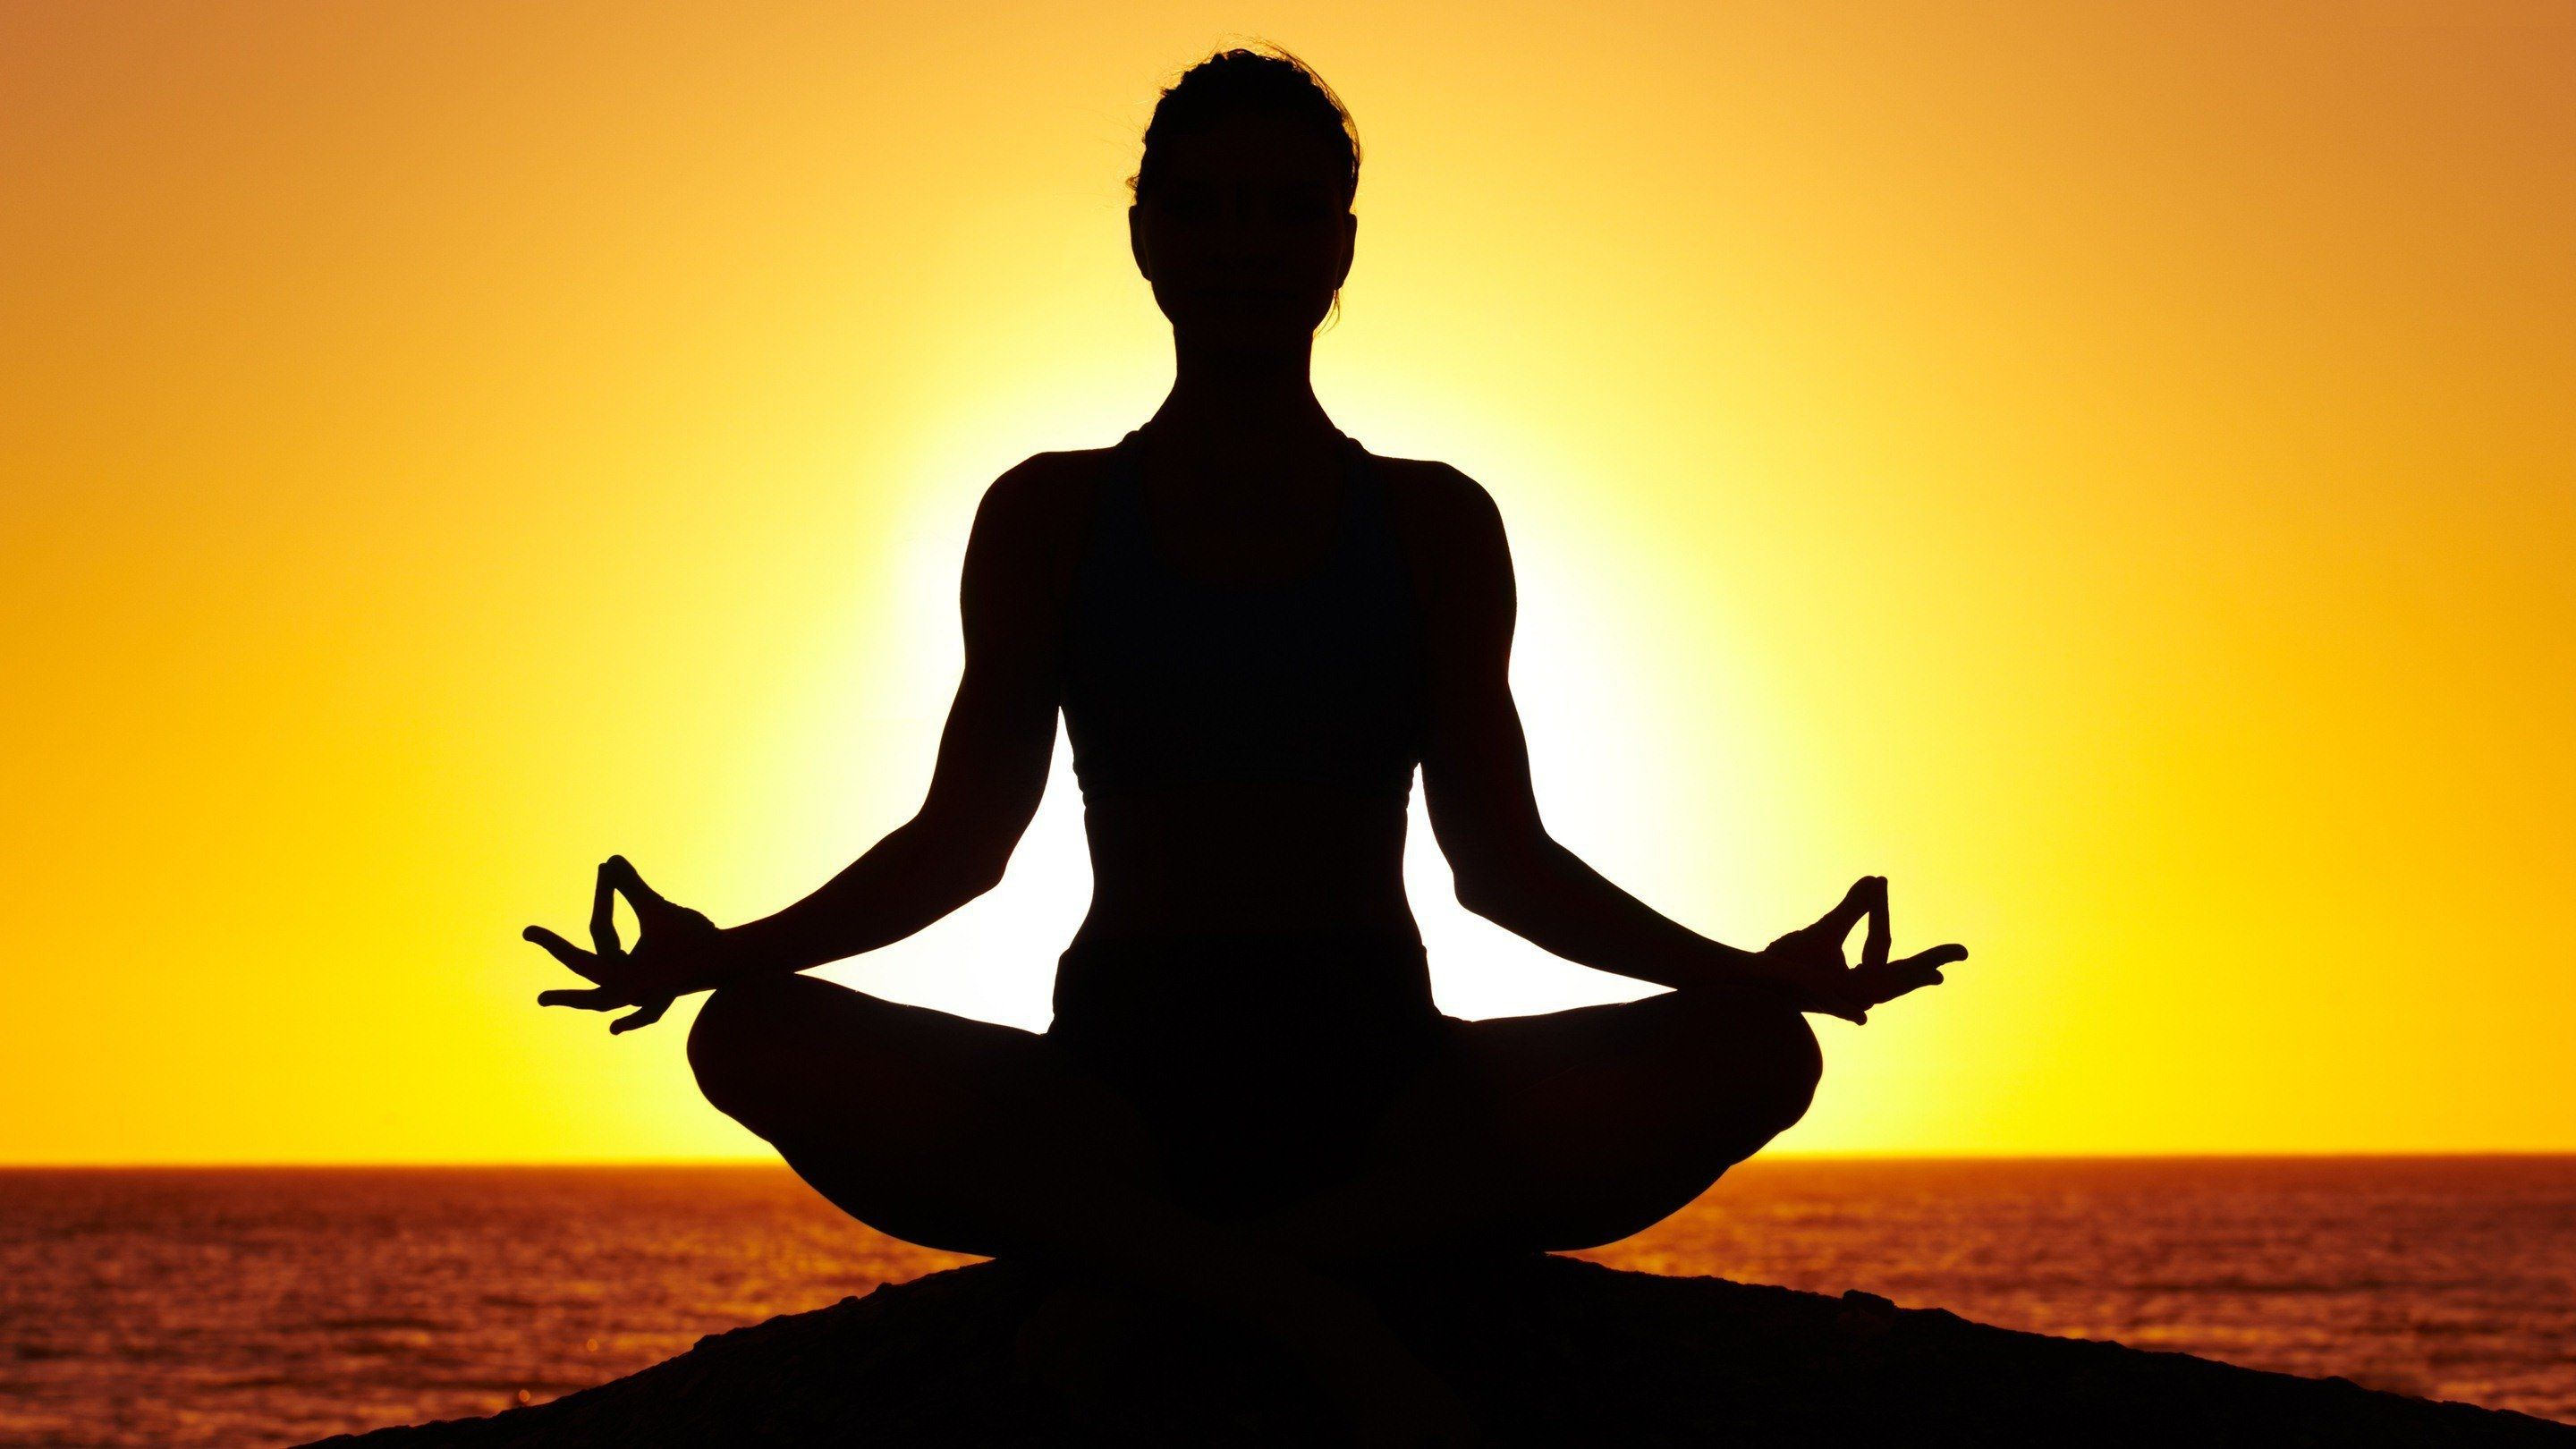 Meditation Yoga Wallpapers Top Free Meditation Yoga Backgrounds Wallpaperaccess